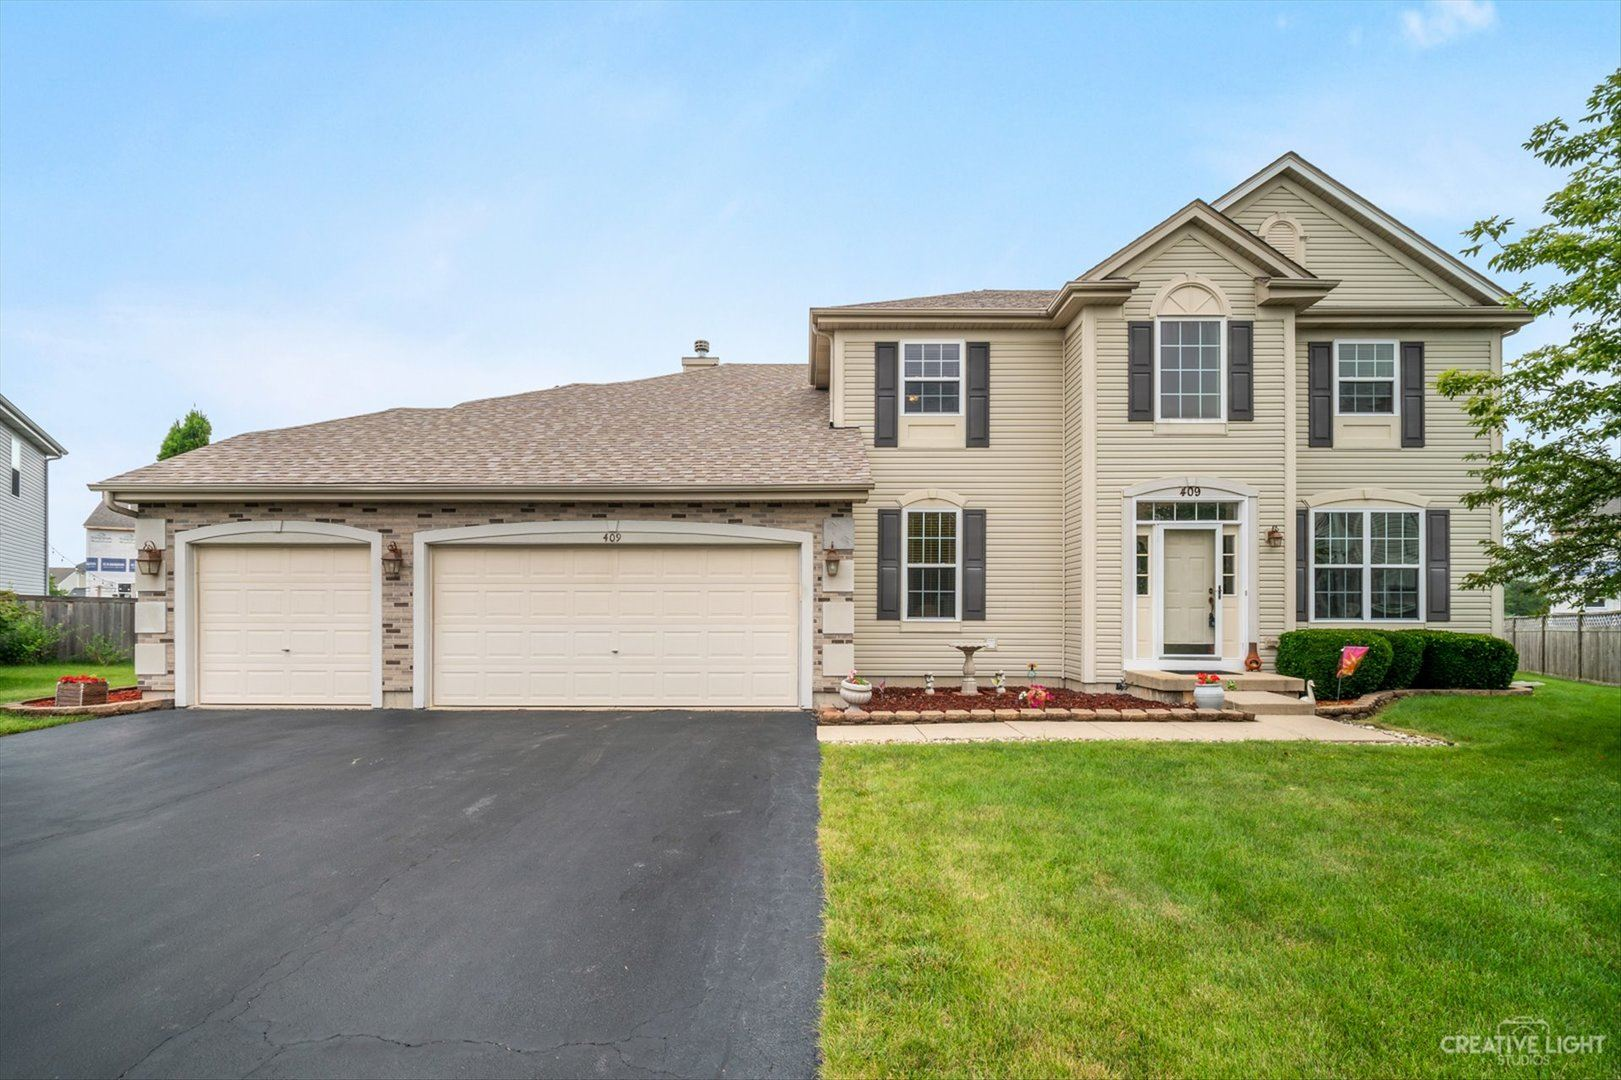 Photo of 409 Cotoneaster Court, Oswego, IL 60543 (MLS # 11154508)